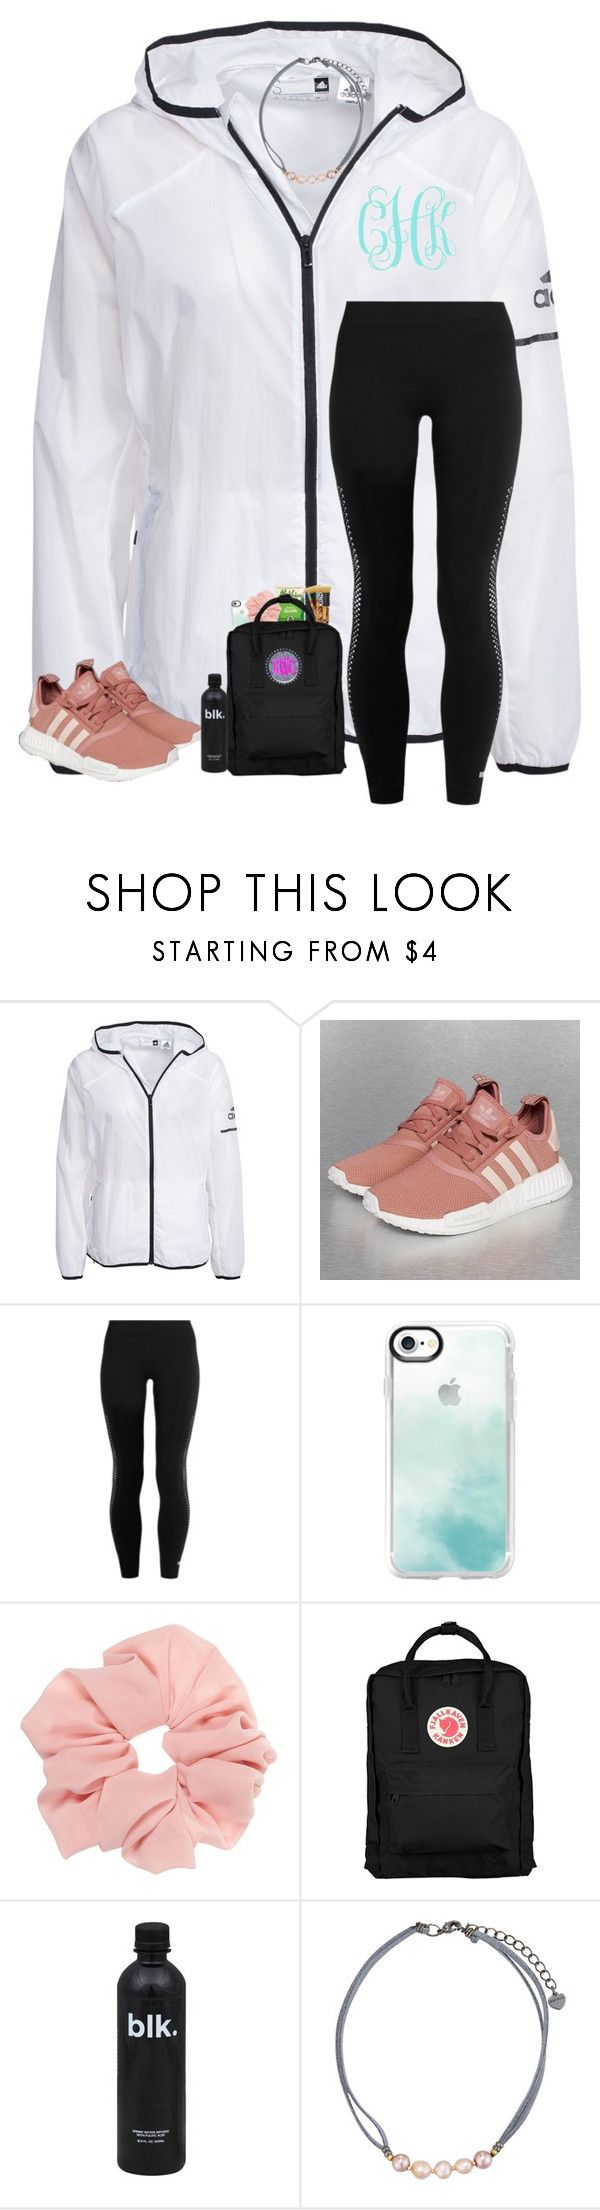 """""""sneakers contest ((((:"""" by arieannahicks on Polyvore featuring adidas, Casetify, Fjällräven, NAKAMOL and WALL"""